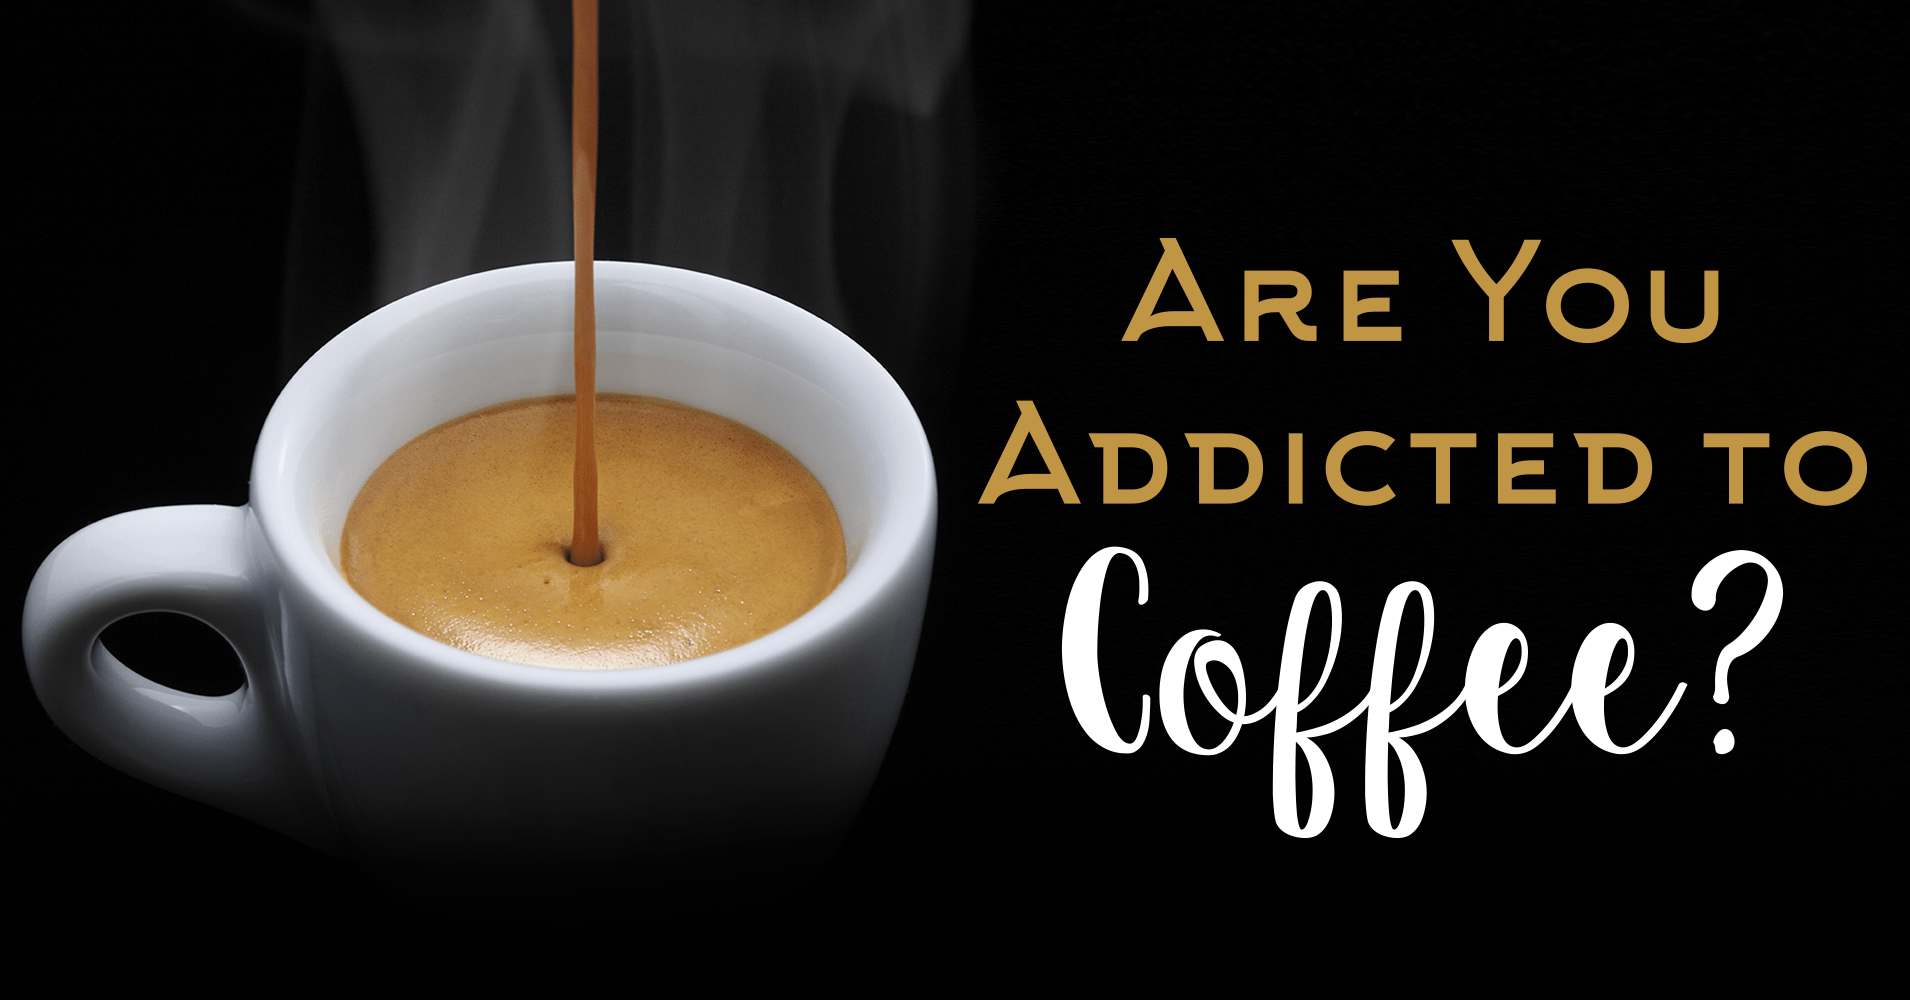 Are You Addicted To Coffee